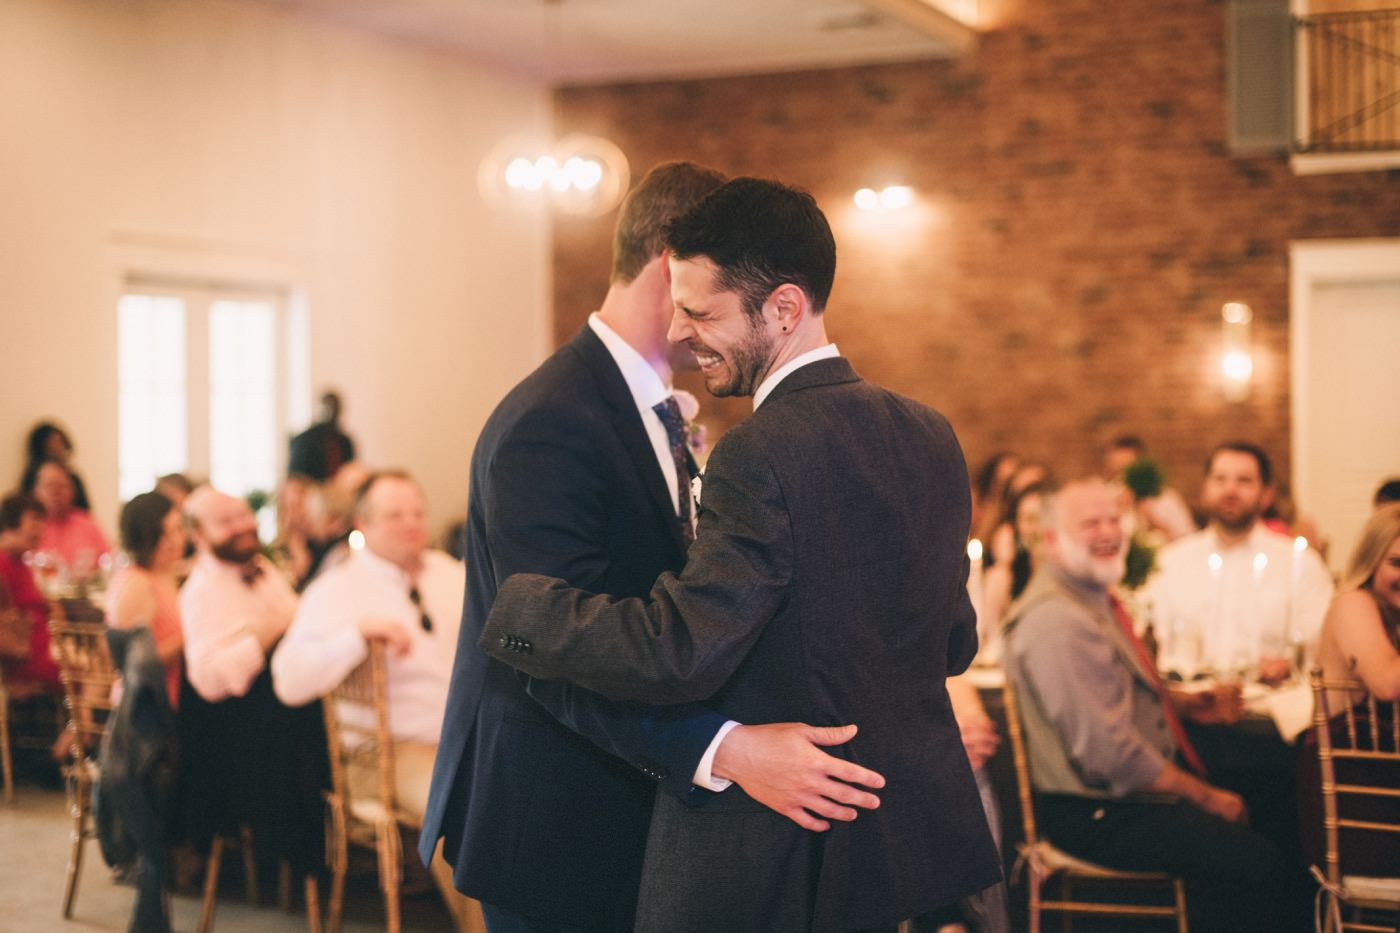 Will-Nate-Louisville-LGBTQ-Pride-Month-Kentucky-Wedding-By-Sarah-Katherine-Davis-Photograpy0043.JPG